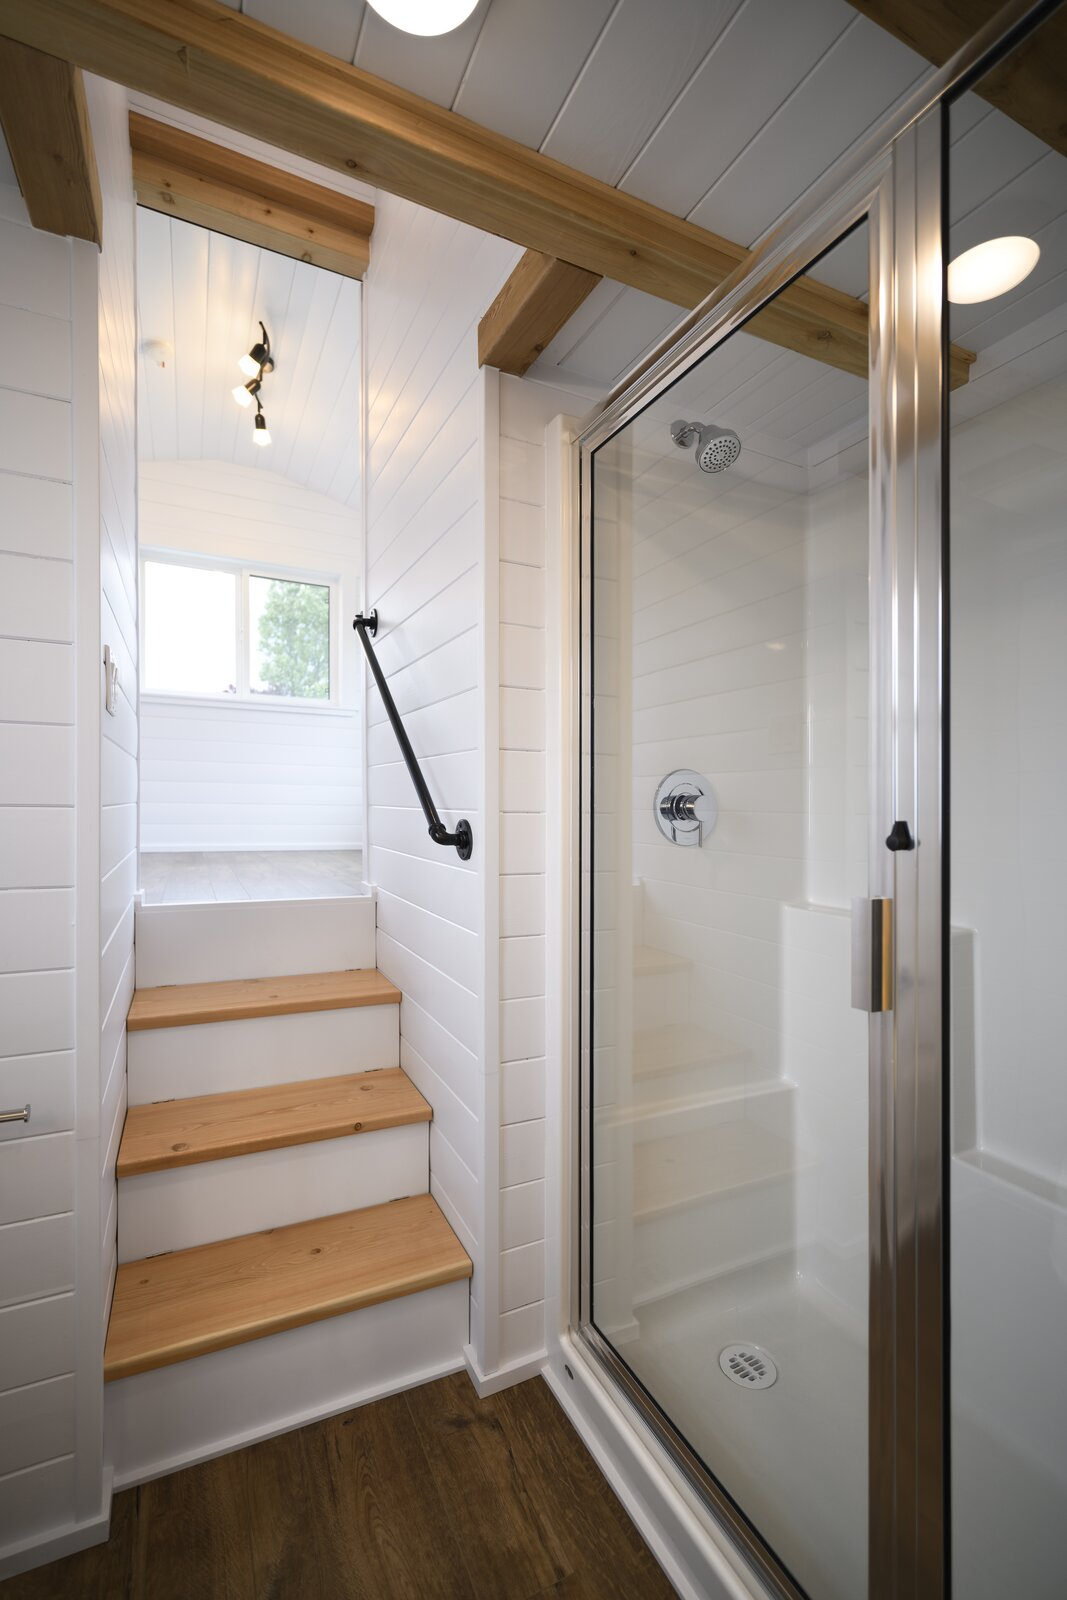 Bath Room, Vinyl Floor, Ceiling Lighting, and Enclosed Shower The bathroom features a shower with a glass door and a partial glass wall.  Photo 7 of 11 in One Family's 416-Square-Foot Digs Expand the Limits of Tiny Home Living